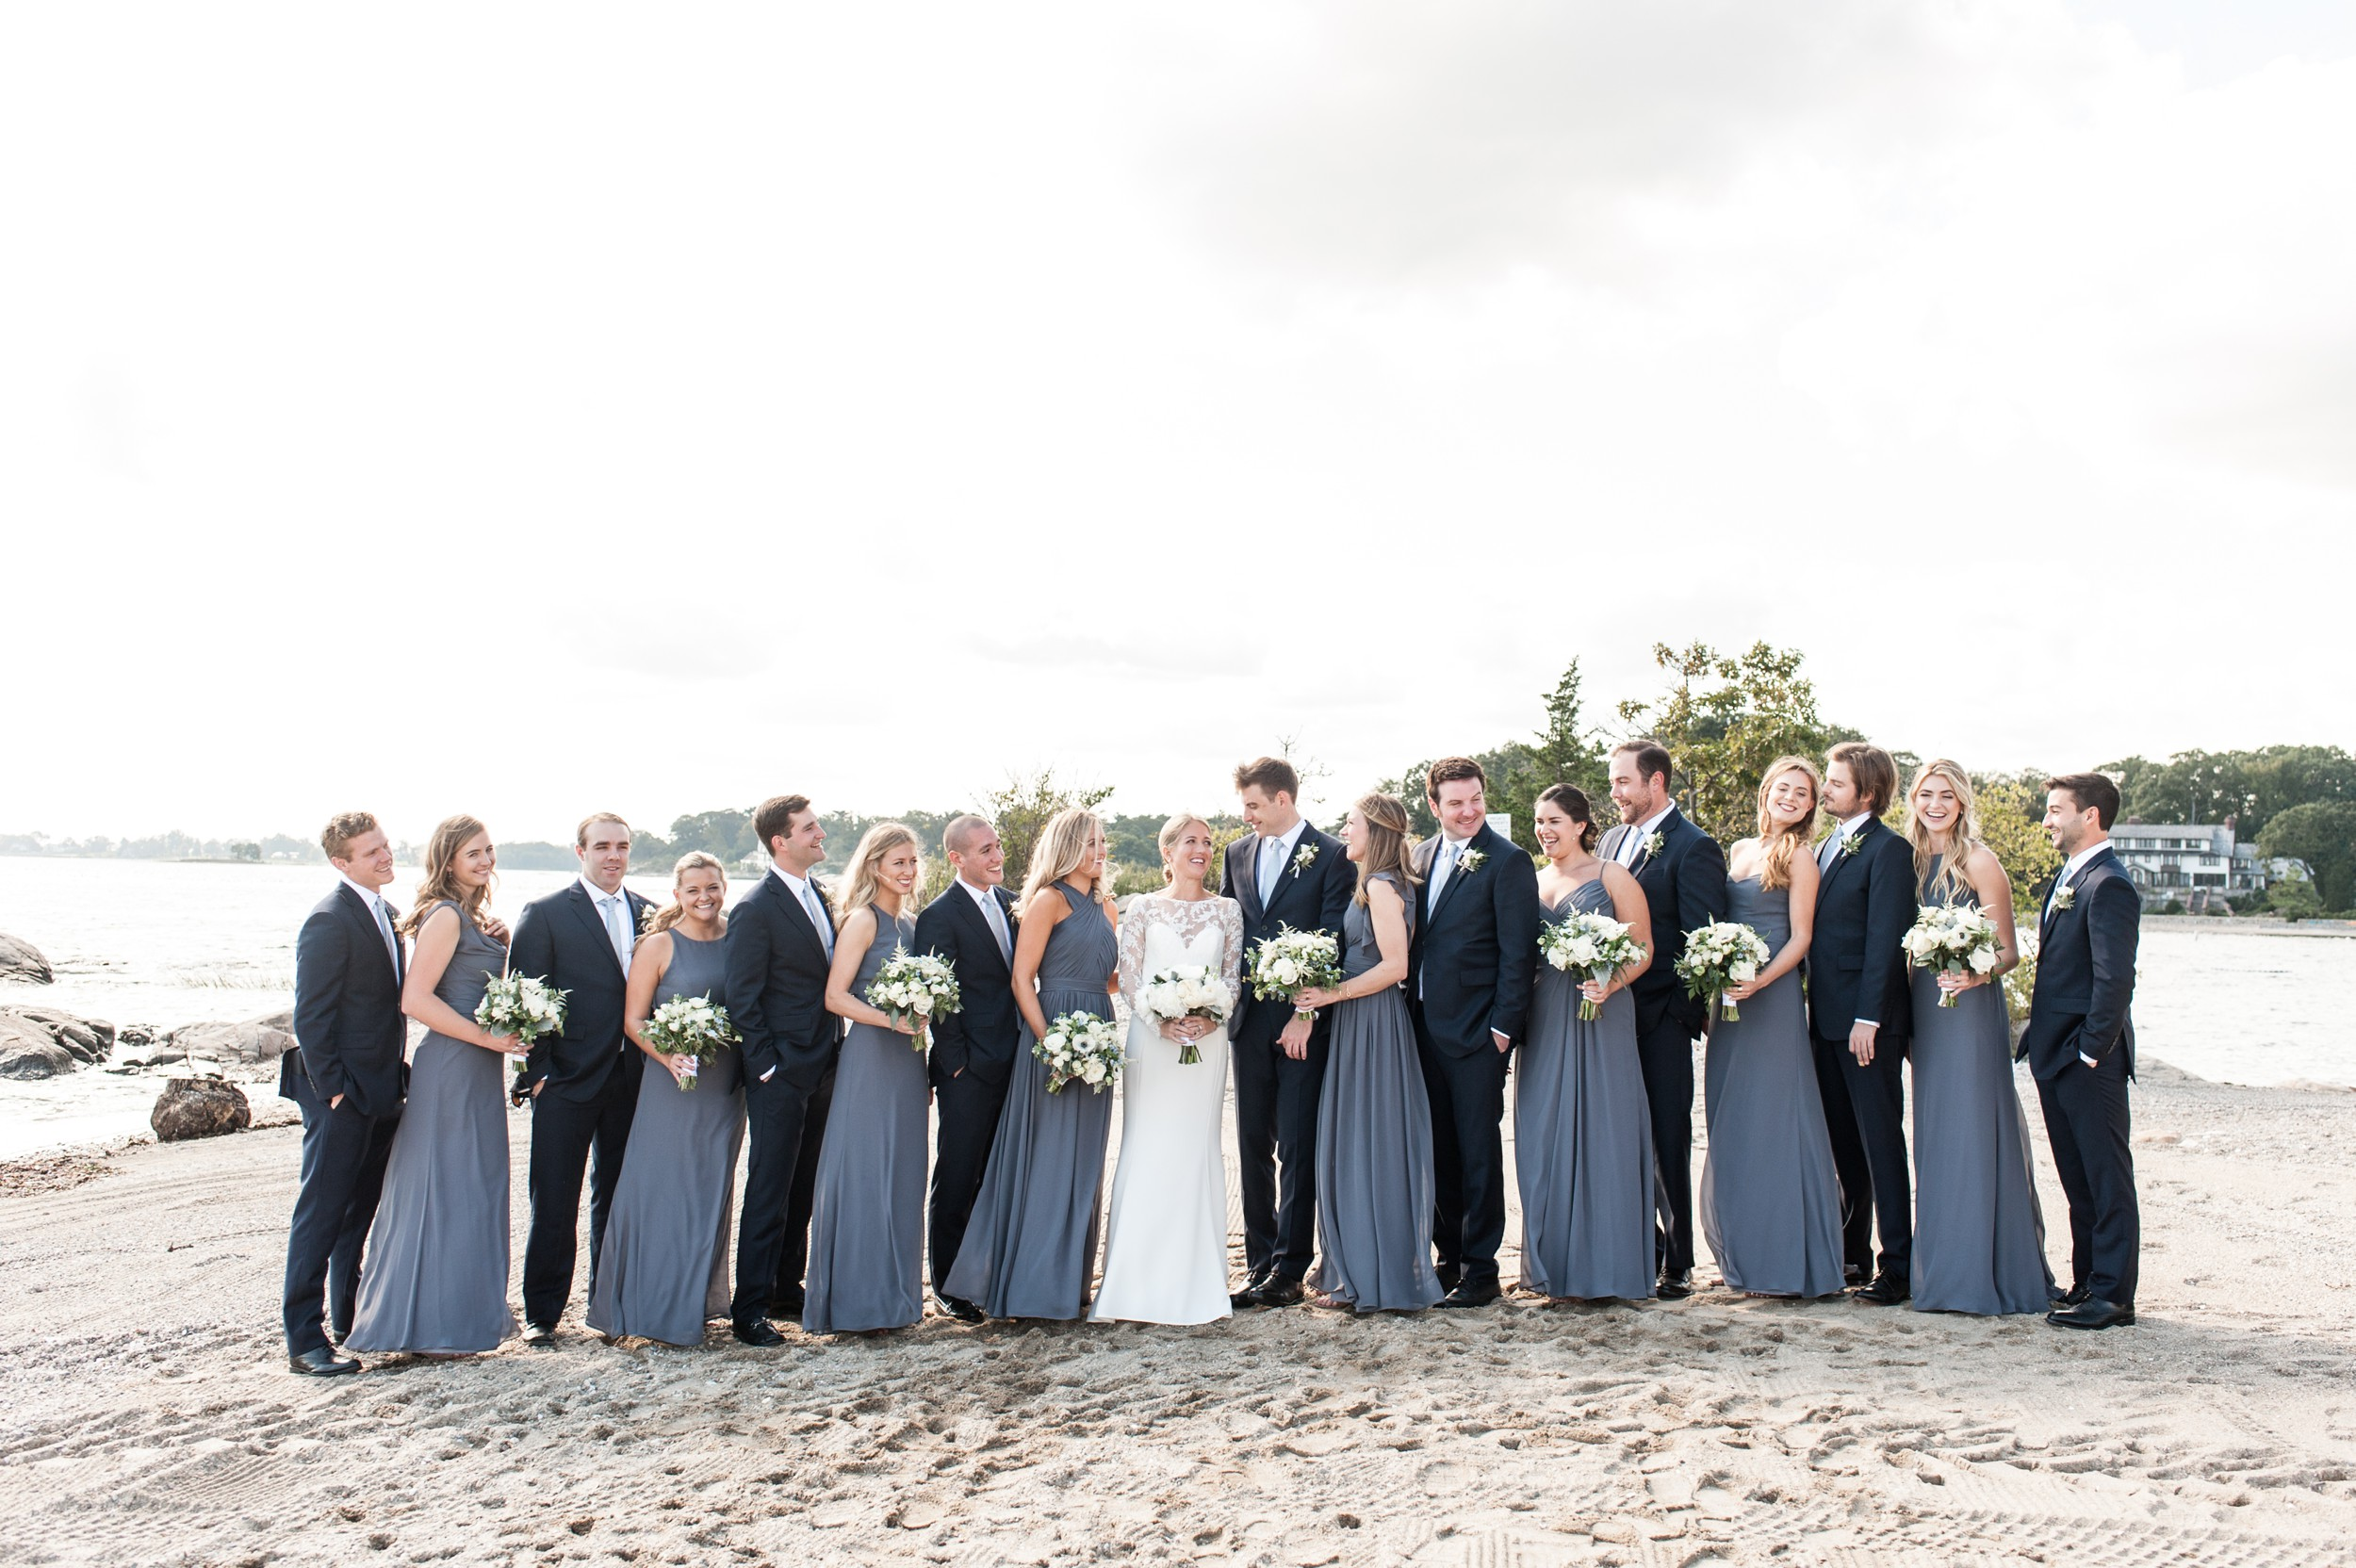 Sunny Wee Burn Beach Club Wedding Darien CT Bridal Party Portraits on the Beach with gray Hayley Paige bridesmaids dresses and Groomsmen in Navy Suits and Gray Ties